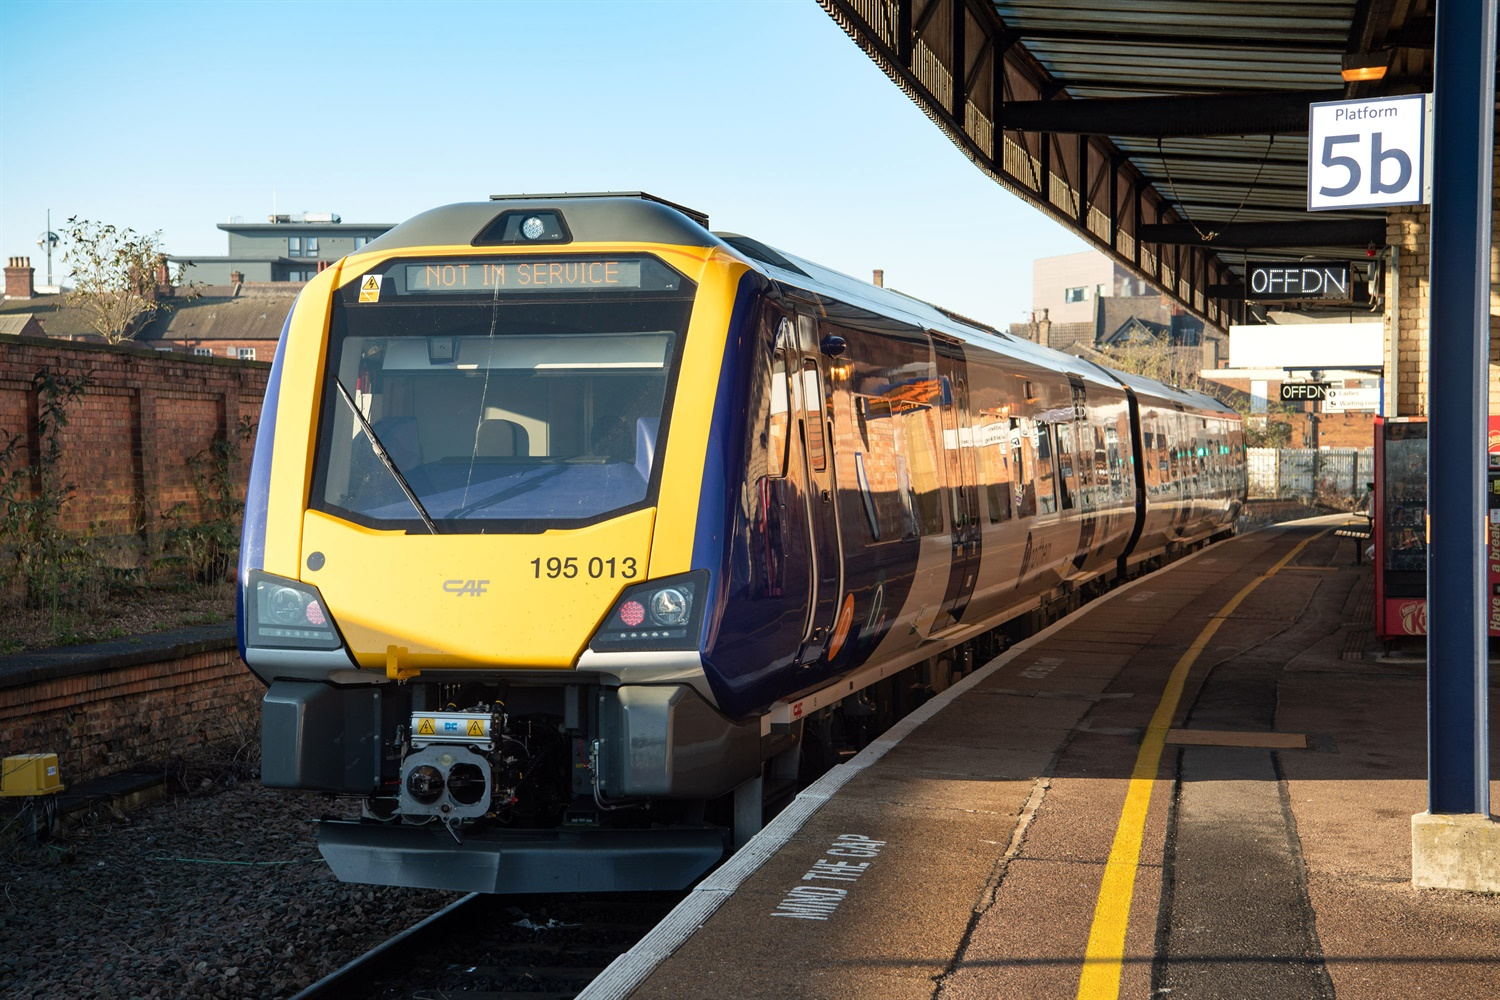 New Northern trains announced across their routes